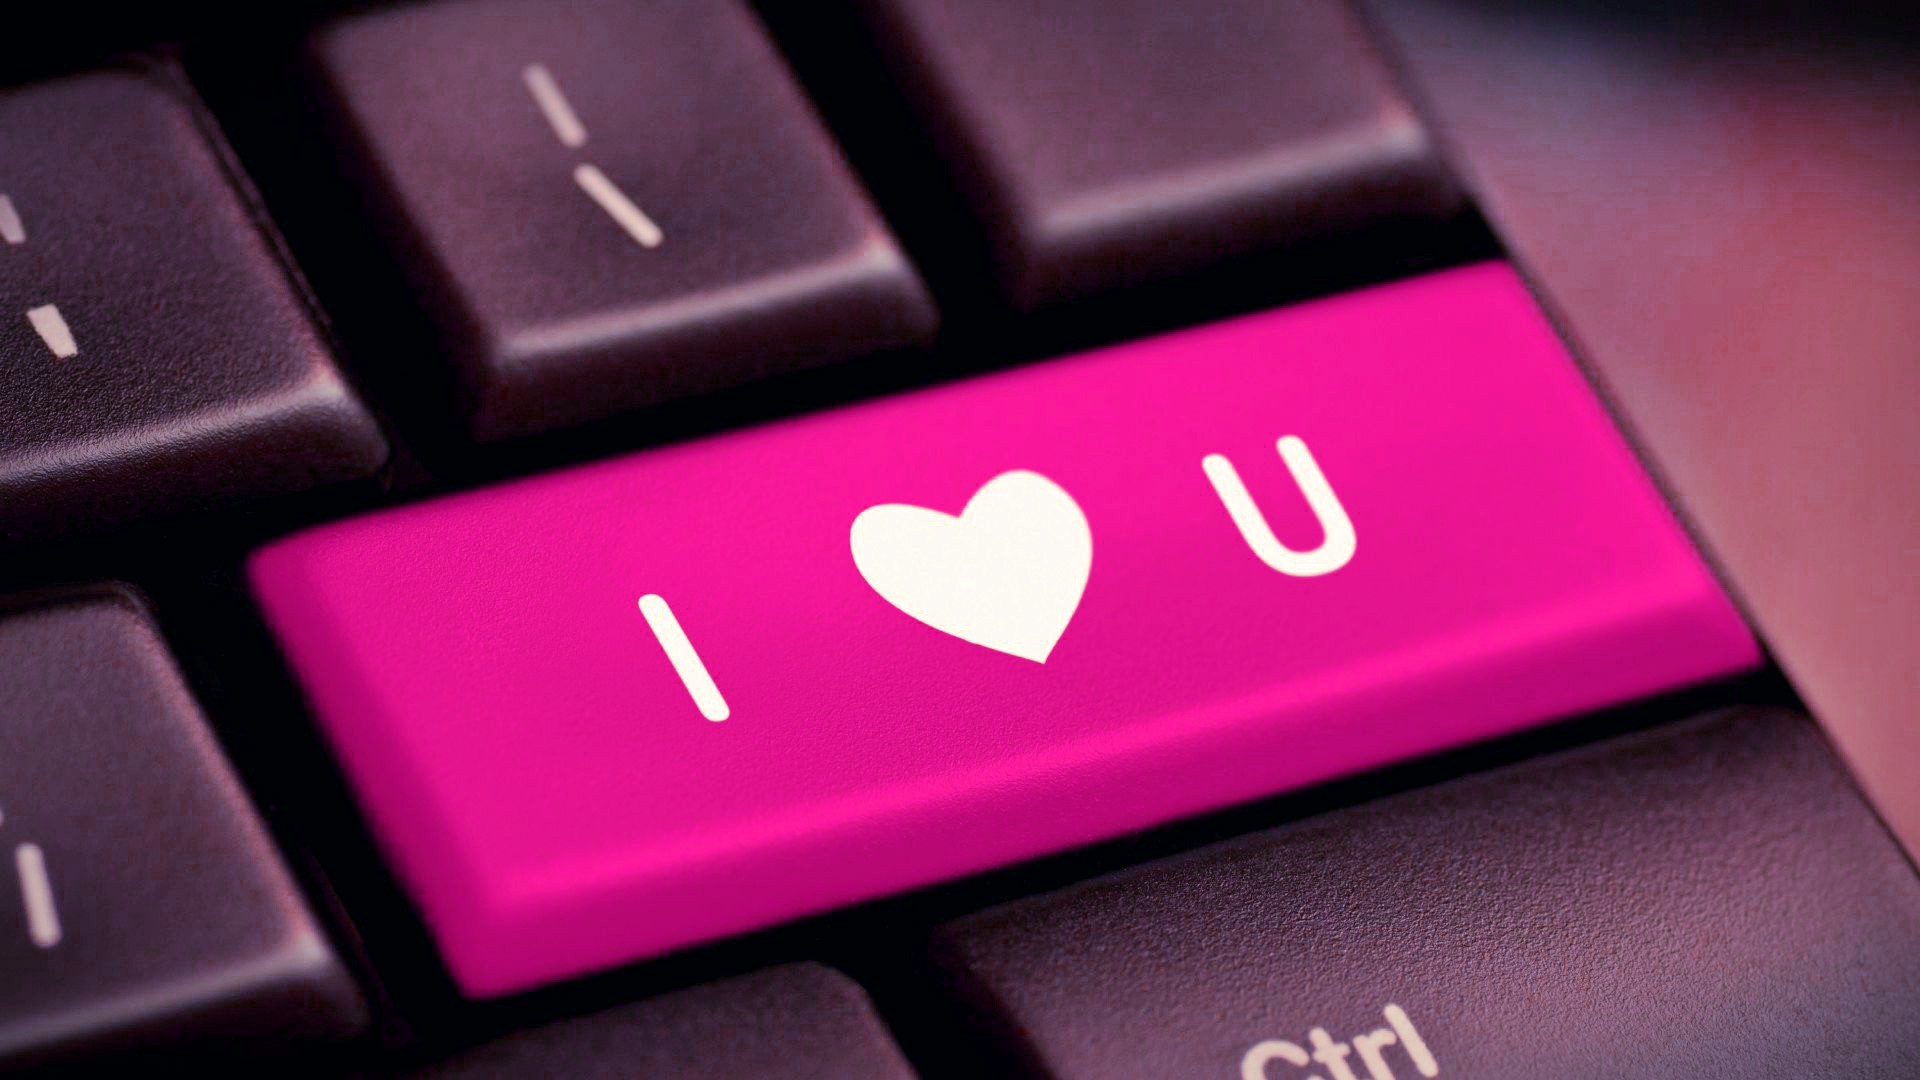 Love Keyboard wallpaper